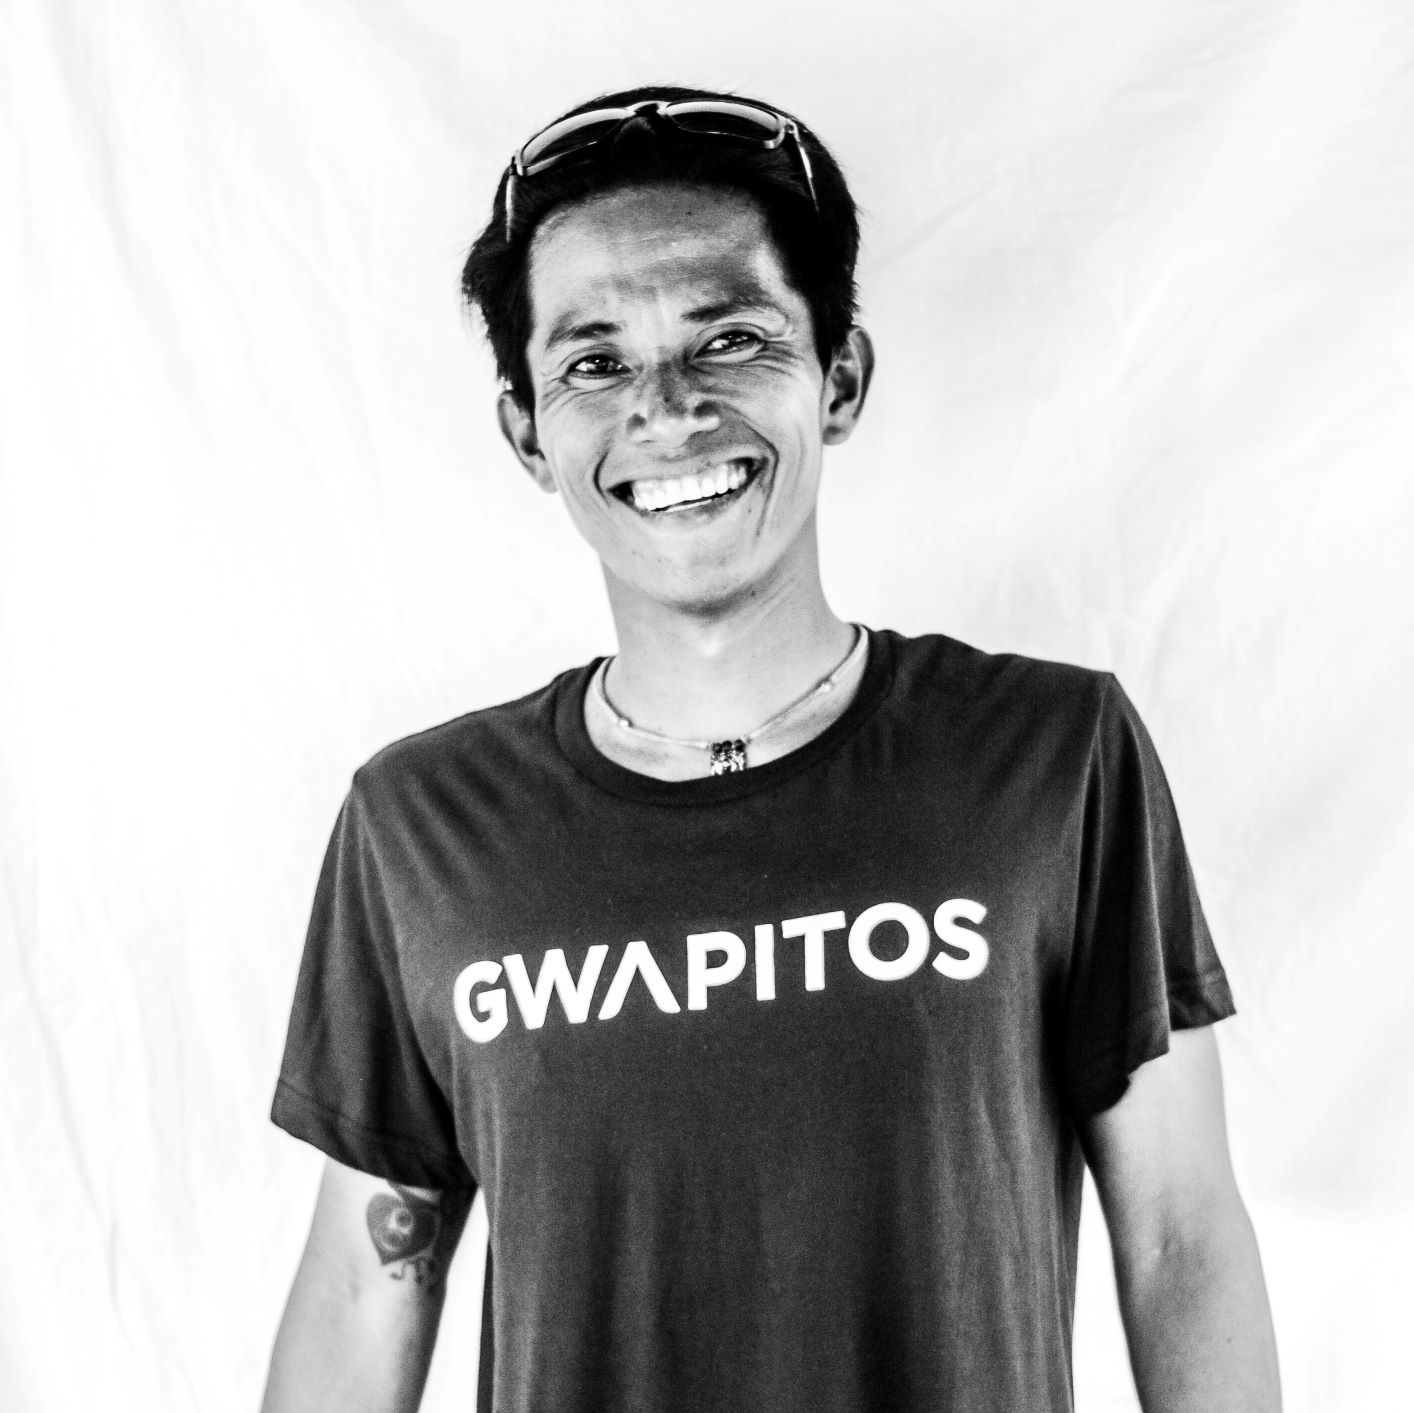 Jong Mutia, 36 - From General Luna, SiargaoSurfing for 22 yearsSurf instructor for 7 years